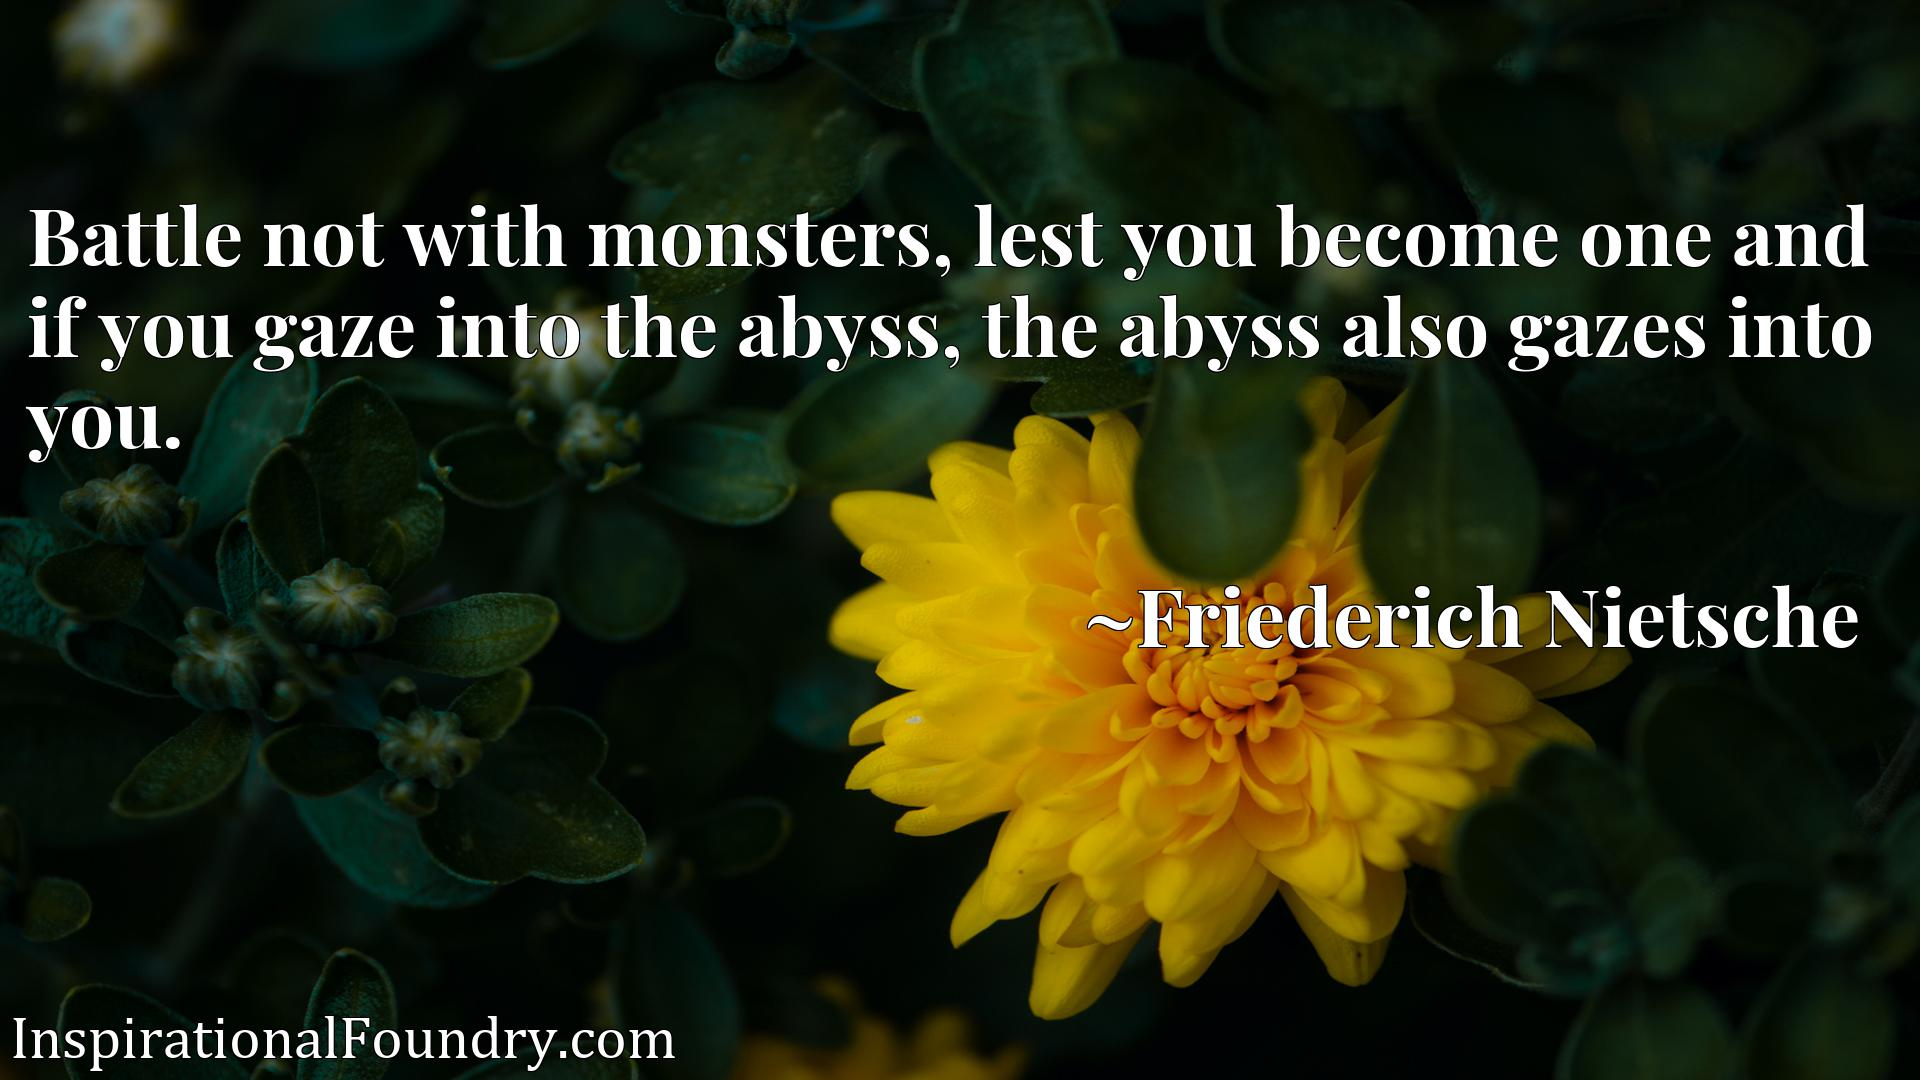 Battle not with monsters, lest you become one and if you gaze into the abyss, the abyss also gazes into you.